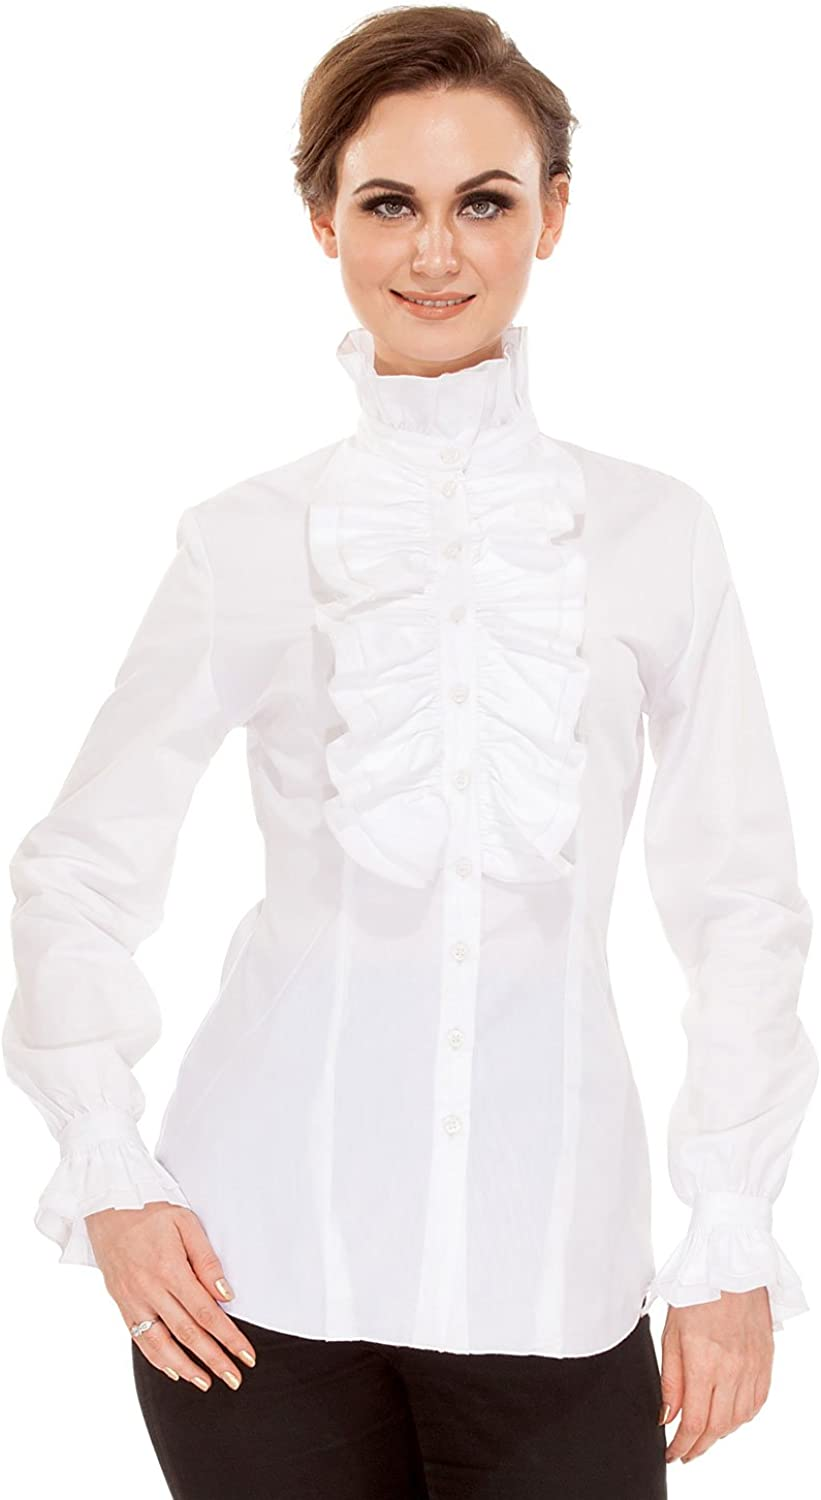 Cottagecore Clothing, Soft Aesthetic ThePirateDressing Steampunk Gothic Victorian Cosplay Costume Womens Stand-Up Collar 100% Cotton Blouse Shirt $41.95 AT vintagedancer.com